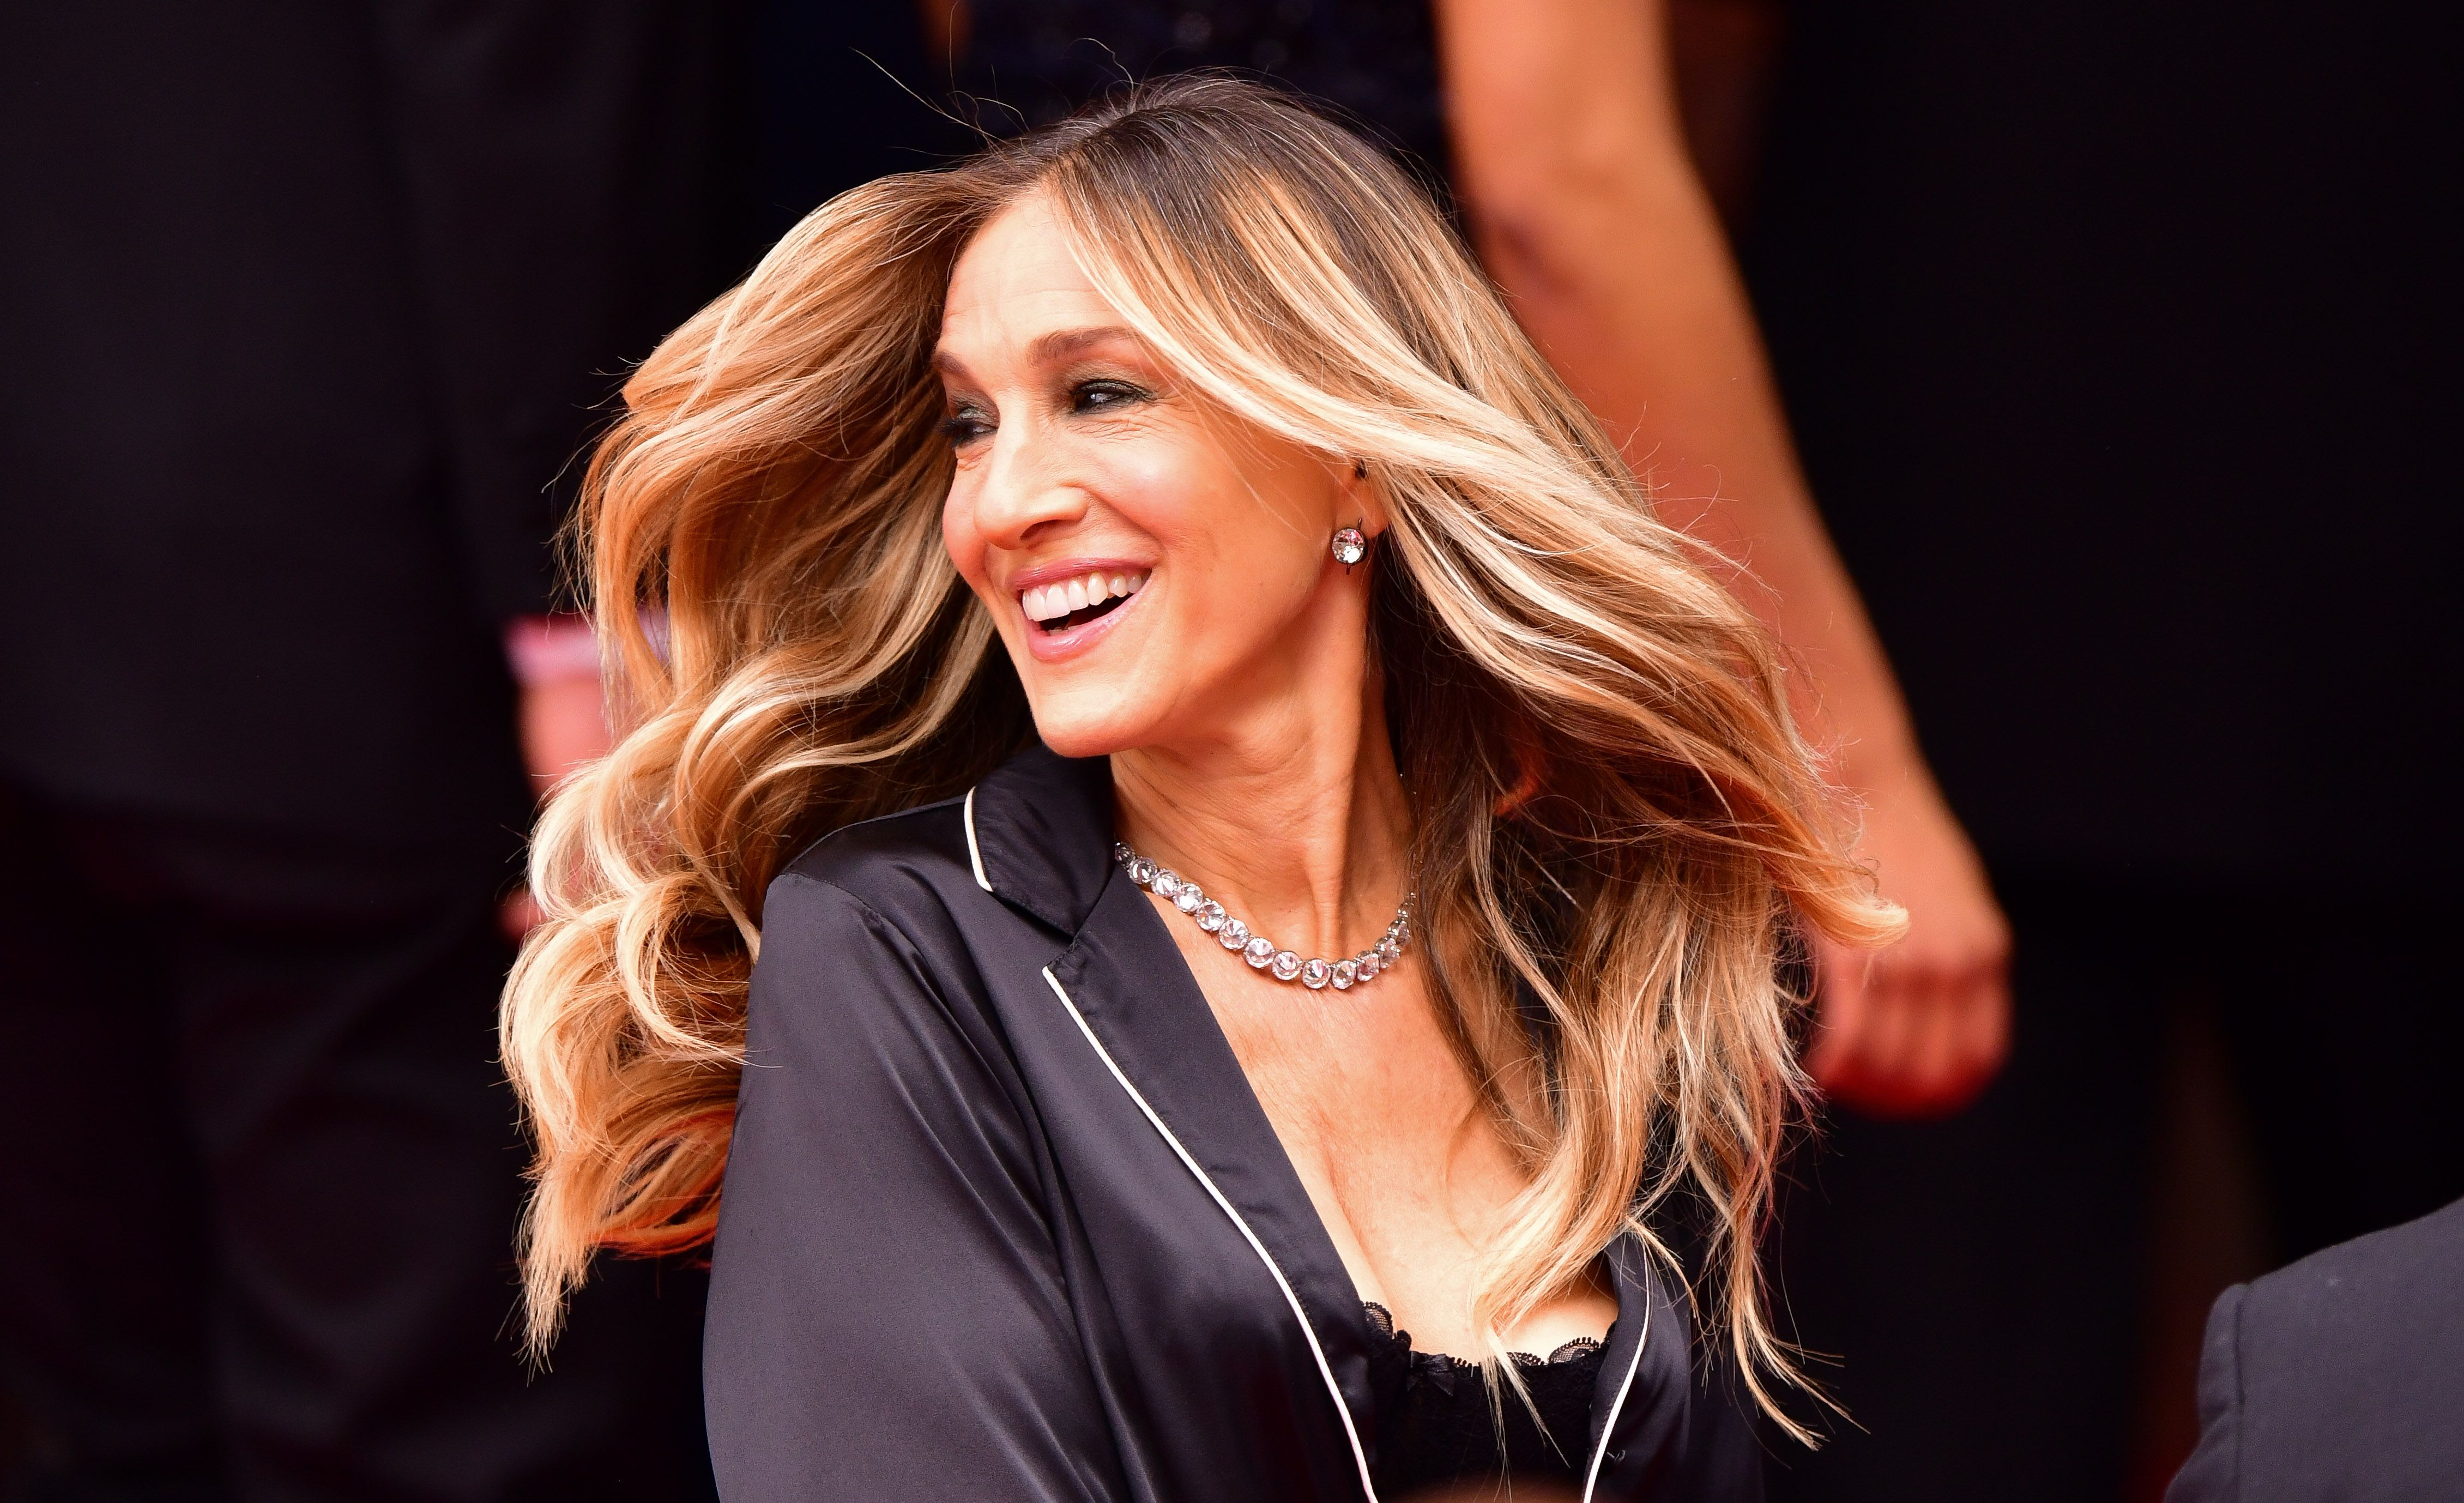 Sarah Jessica Parker seen filming a commercial in Manhattan for Italian lingerie brand Intimissimi on June 5, 2018 | Photo: Getty Images